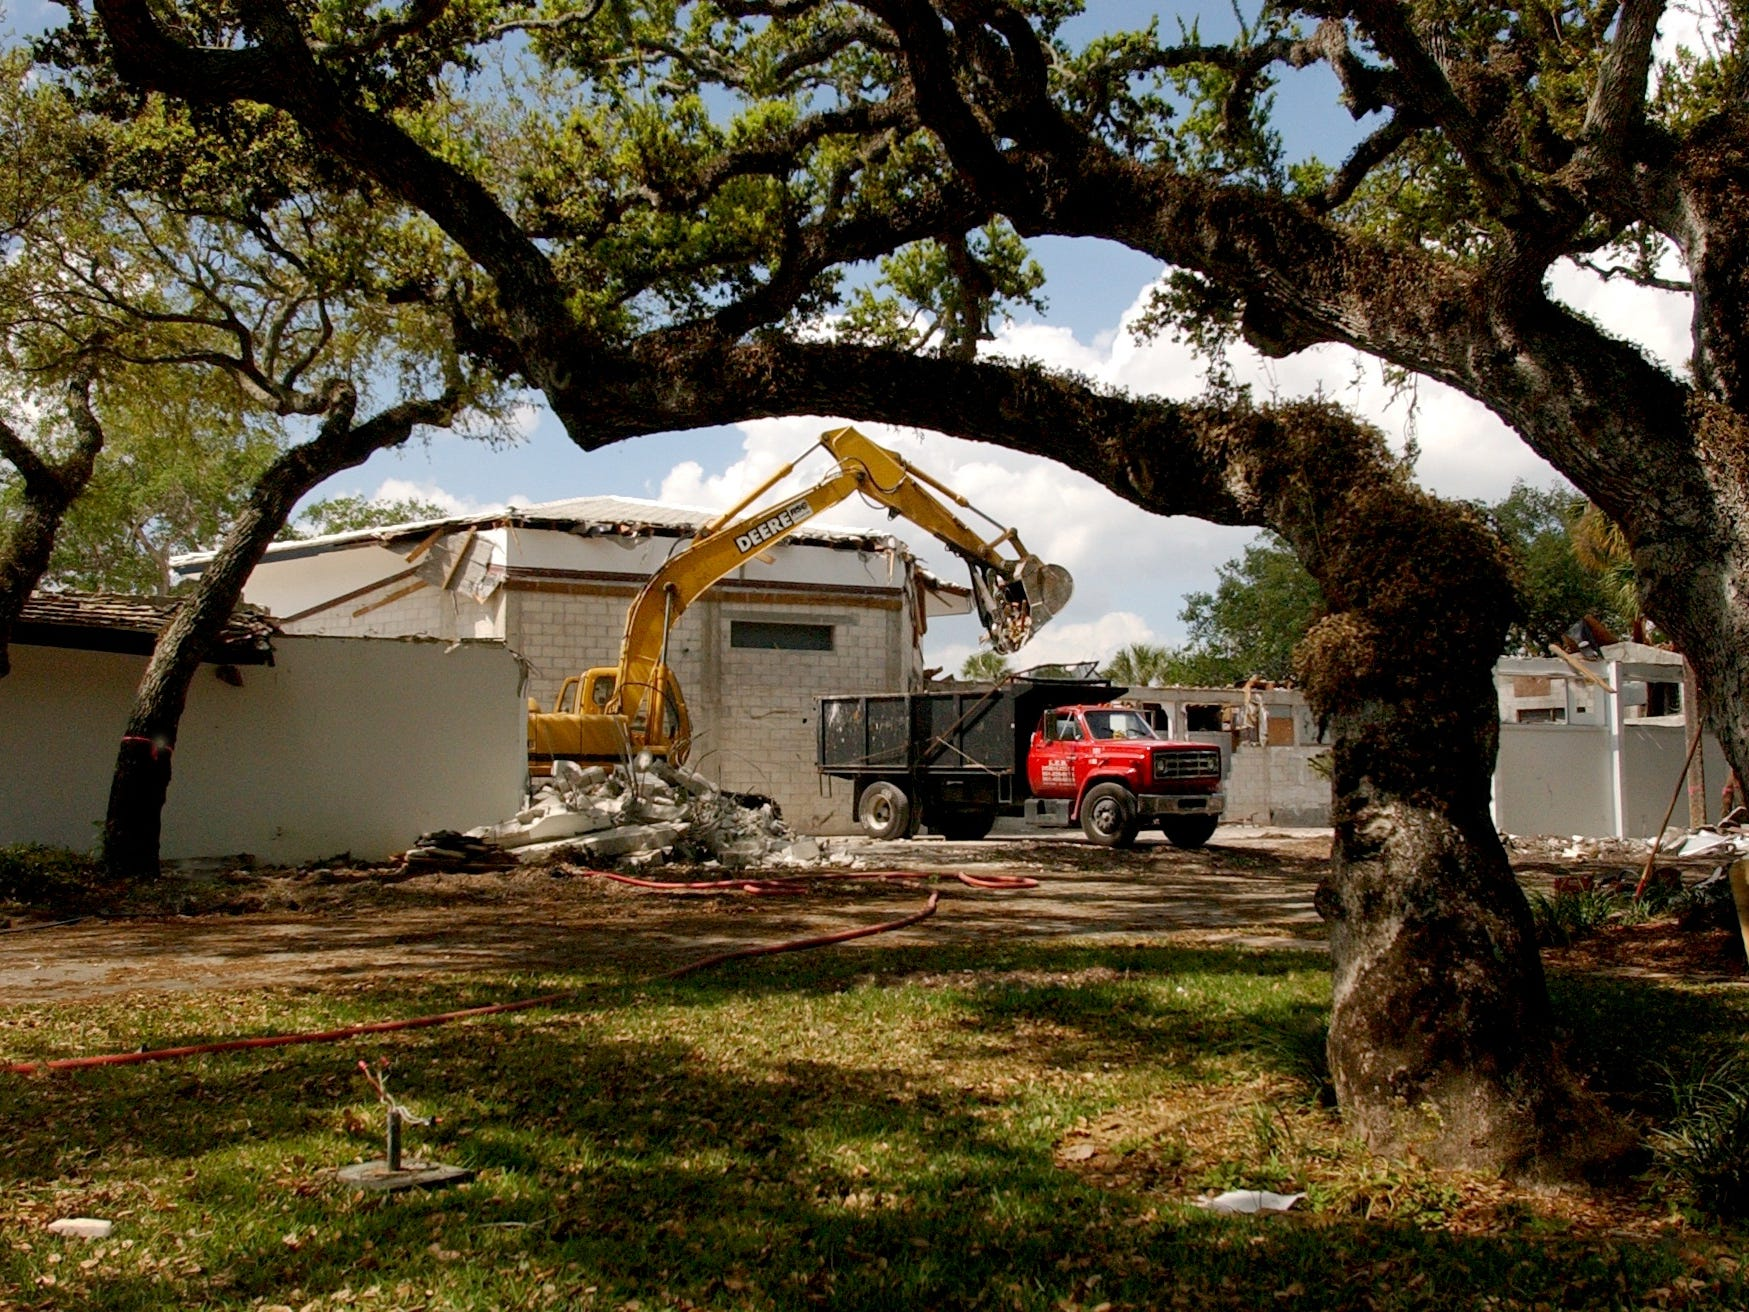 March 14, 2002 - Workers with L.E.B. Demolition of Jensen Beach maneuver to save the trees on the grounds as they demolish buildings at the Riomar Bay Yacht Club in Vero Beach to make way for construction of the Quail Valley Towne Club. The construction was expected to consist of a 12,000-square-foot clubhouse that has a 90-seat pub and grill and a semi-formal dining room with 140 seat indoors and 40 more outdoors.